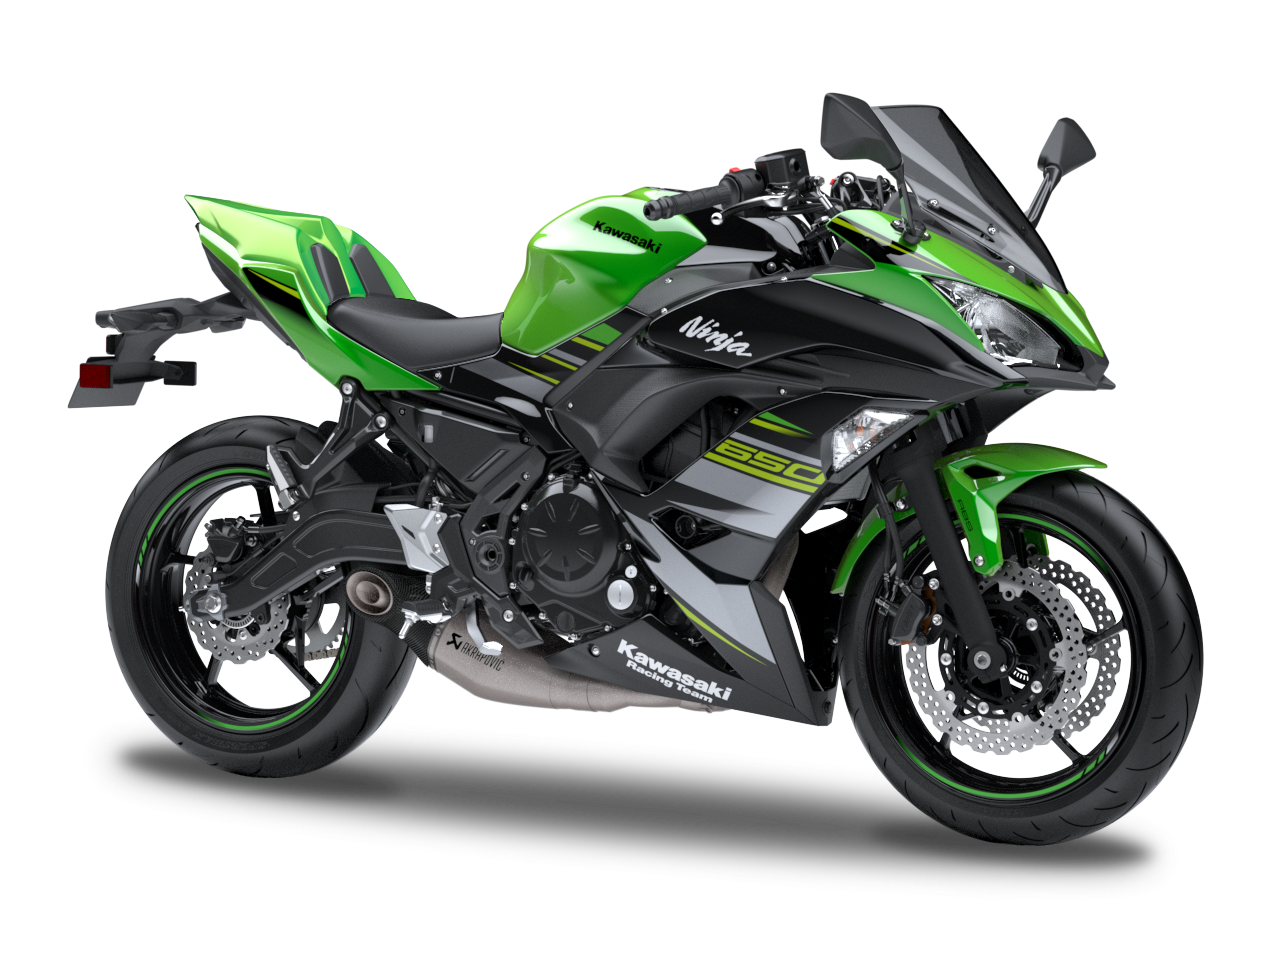 Kawasaki Ninja 650 KRT Edition Performance